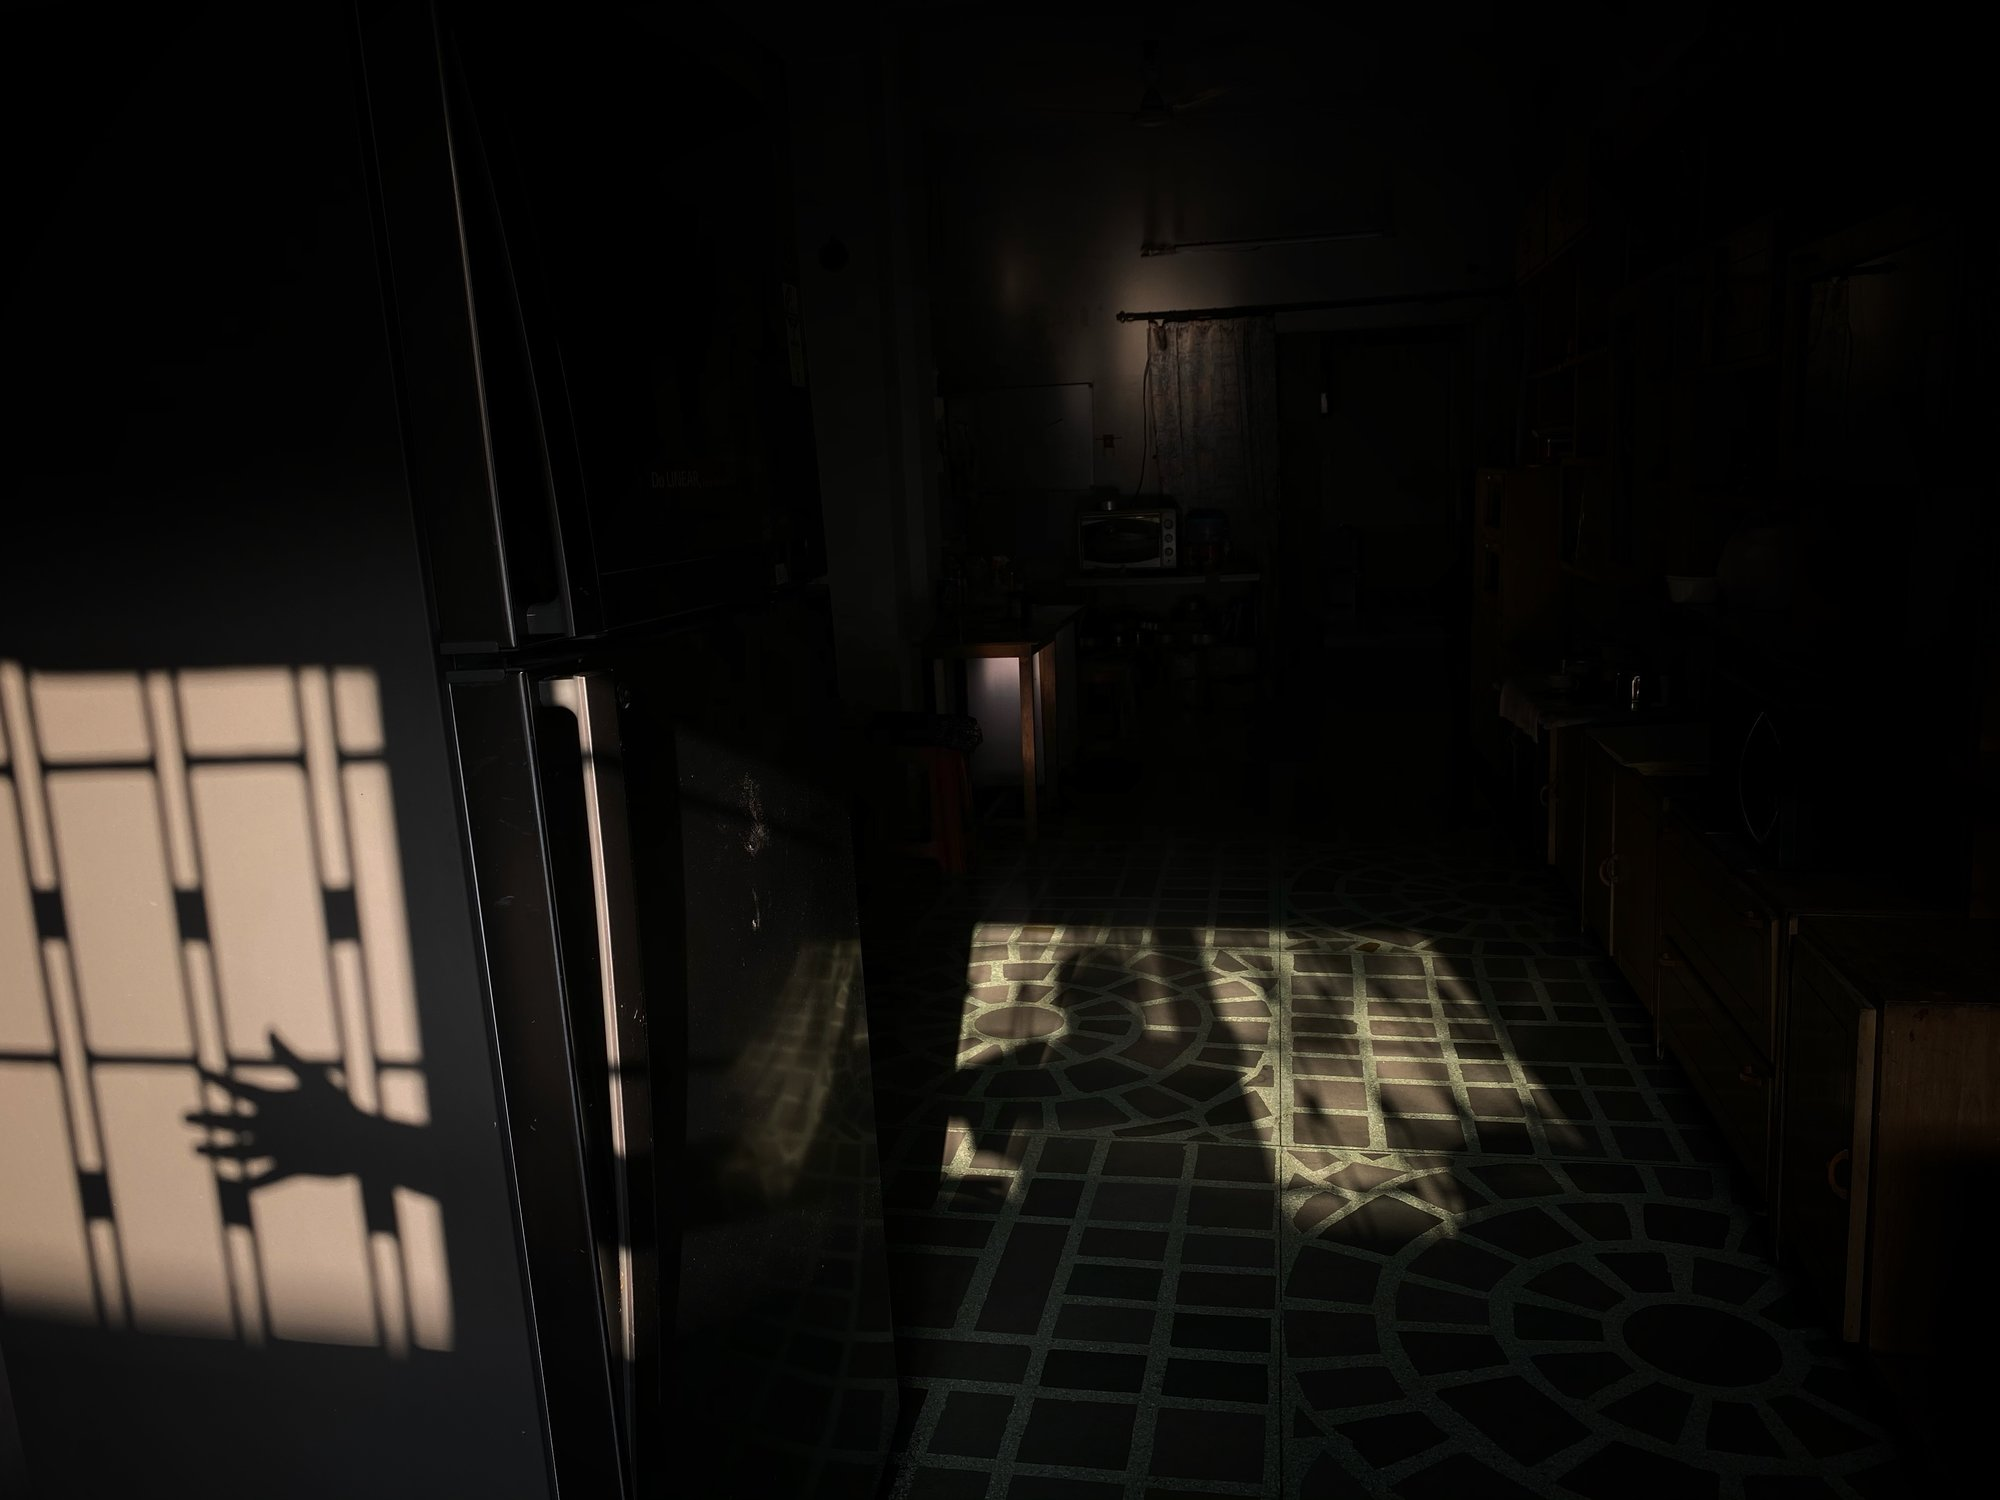 That's how light breaks through my window every morning, throwing light selectively at selective spots in my living room.